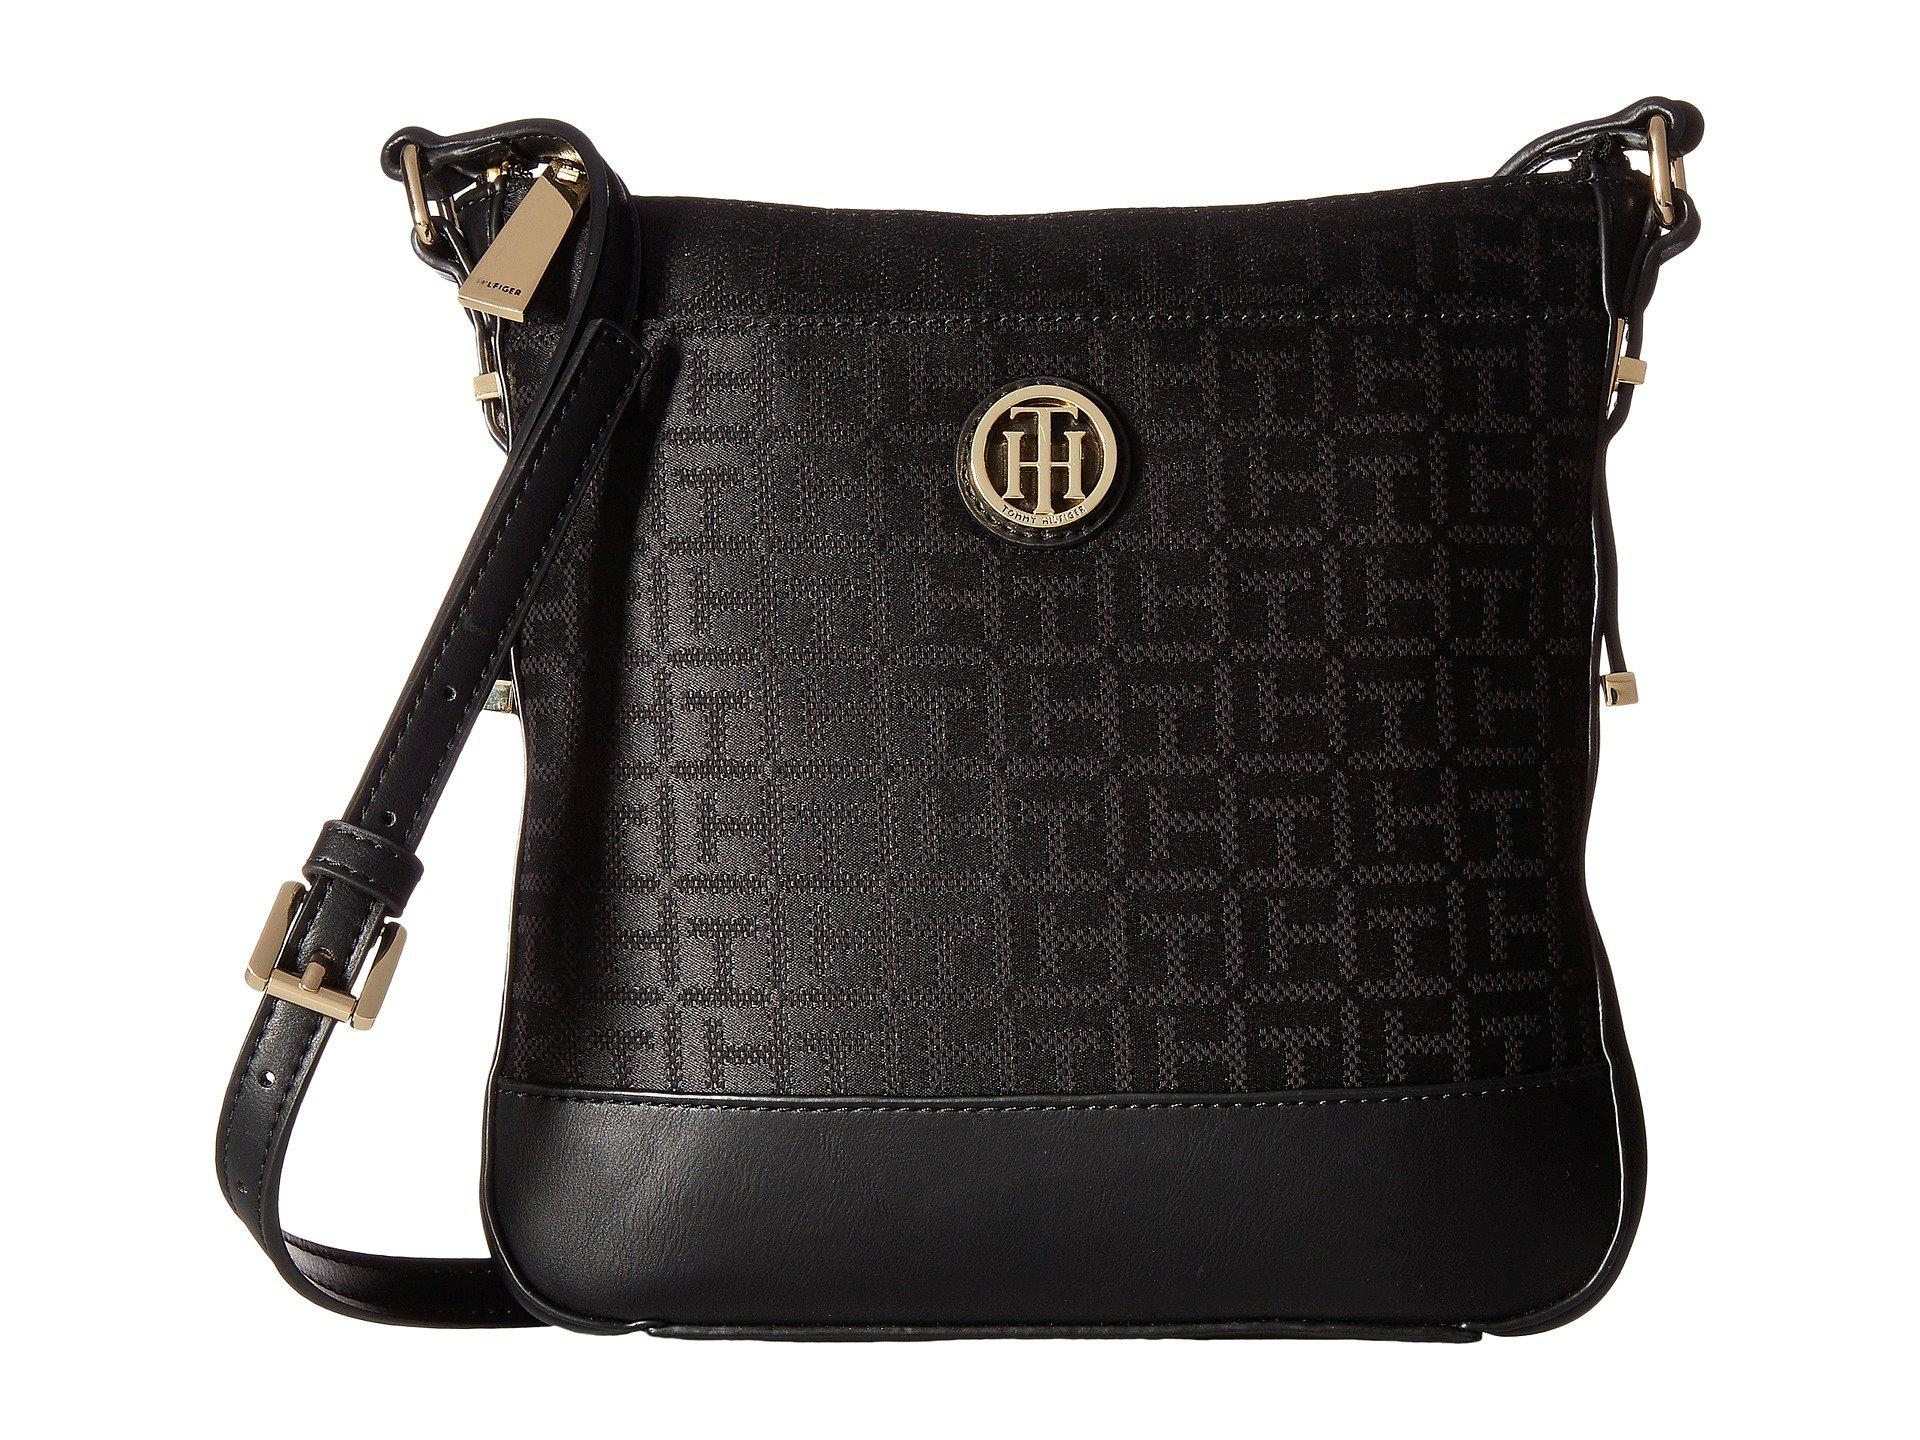 aa21540acc Tommy Hilfiger Gillian North south Crossbody in Black - Lyst